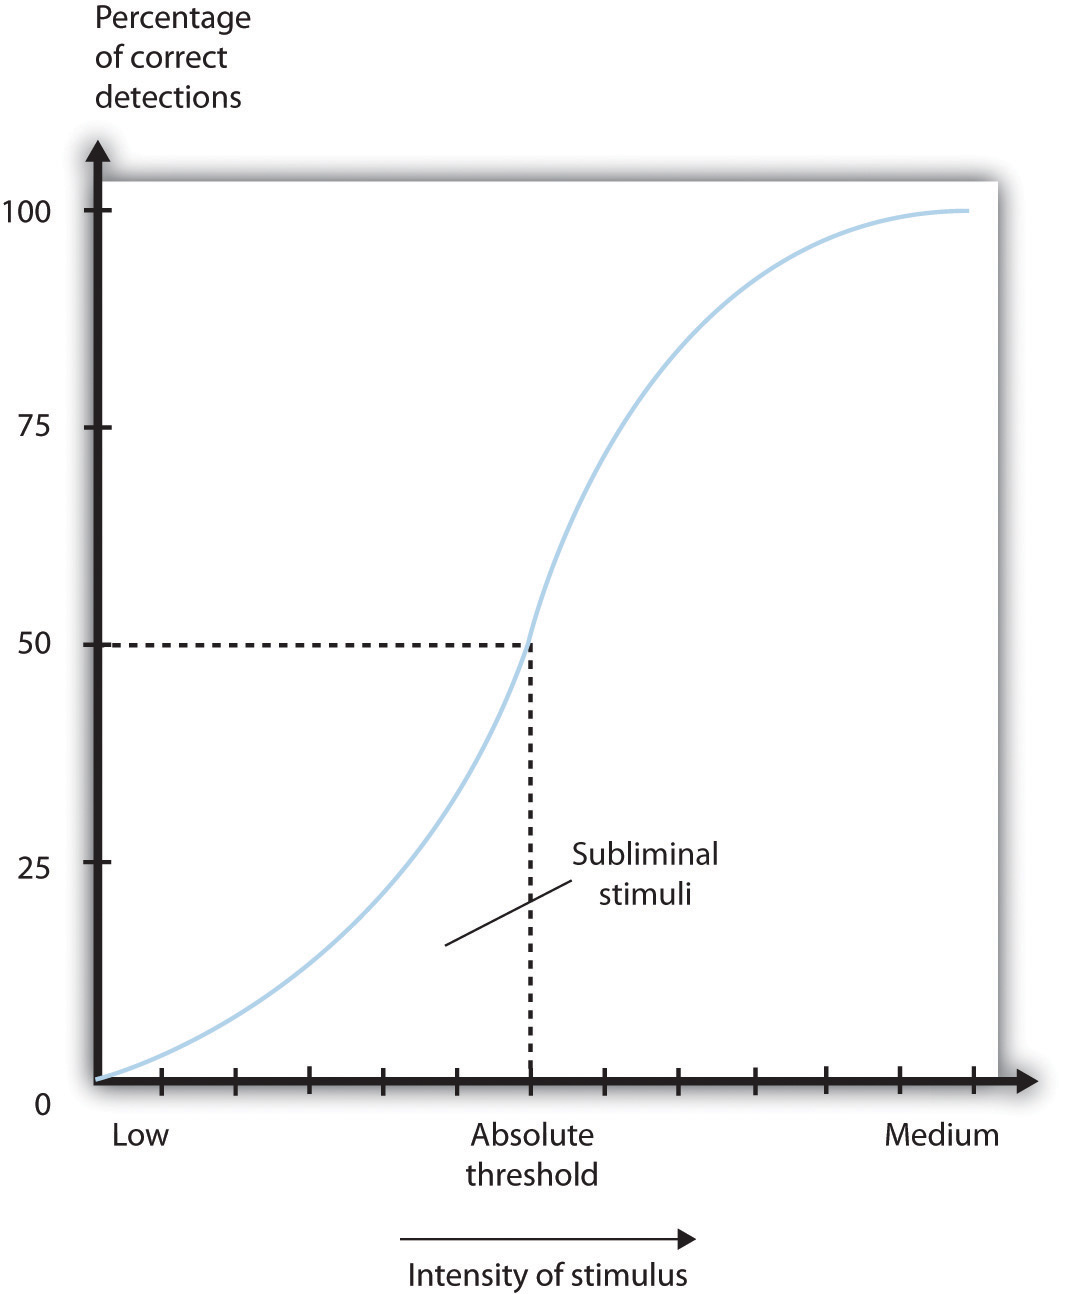 A graph showing a mockup of the absolute threshold. As the intensity of stimulus increases on the X-axis , the percentage of correct detections increases on the Y-axis on an S-shaped curve. Data below the Absolute Threshold point on the X-axis corresponds to data below the 50% point of correct detections, and is labeled subliminal stimuli